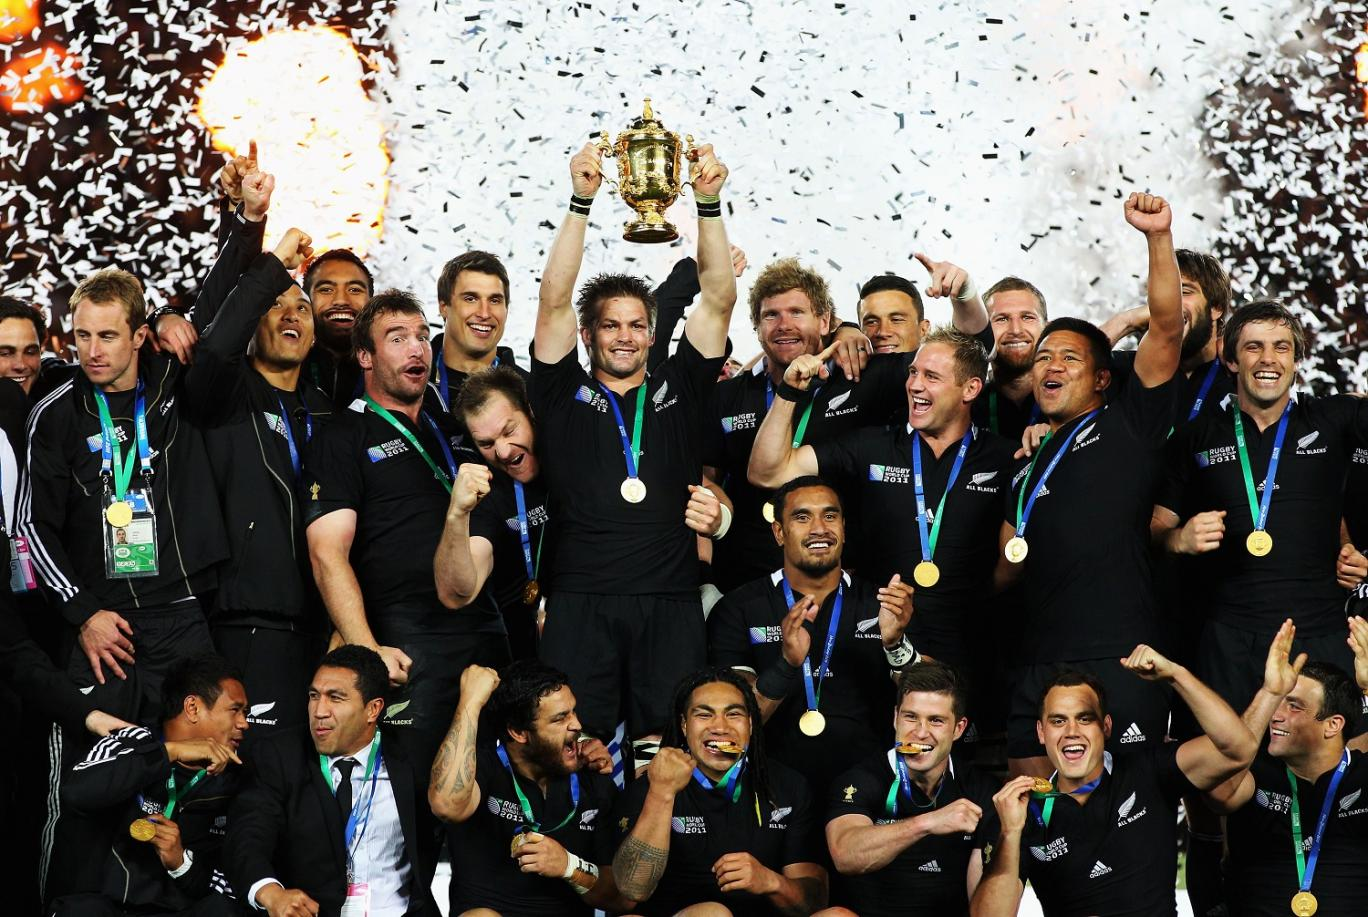 1368x917 - Rugby World Cup 2015 Wallpapers 29